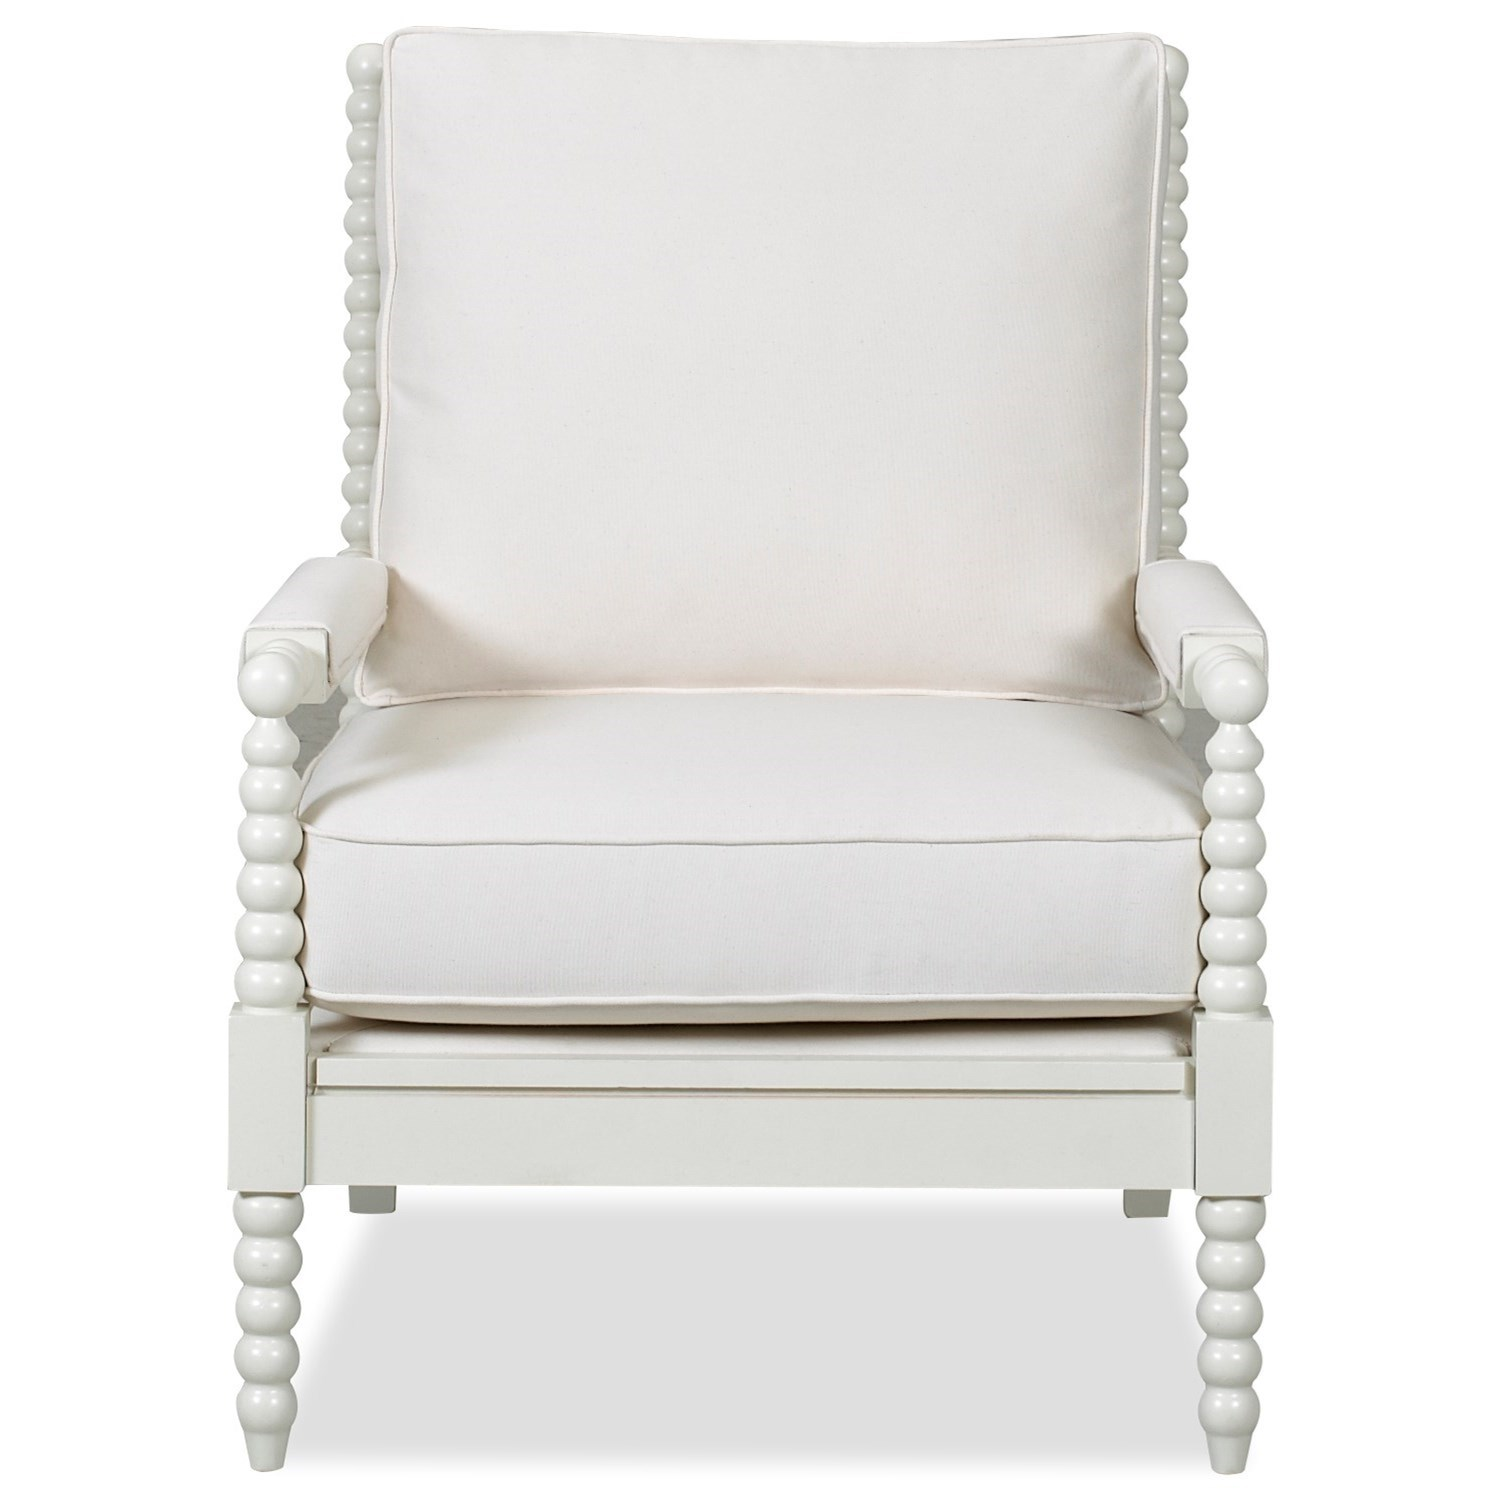 Chairs and Accents Rocco Accent Chair by Klaussner at Johnny Janosik